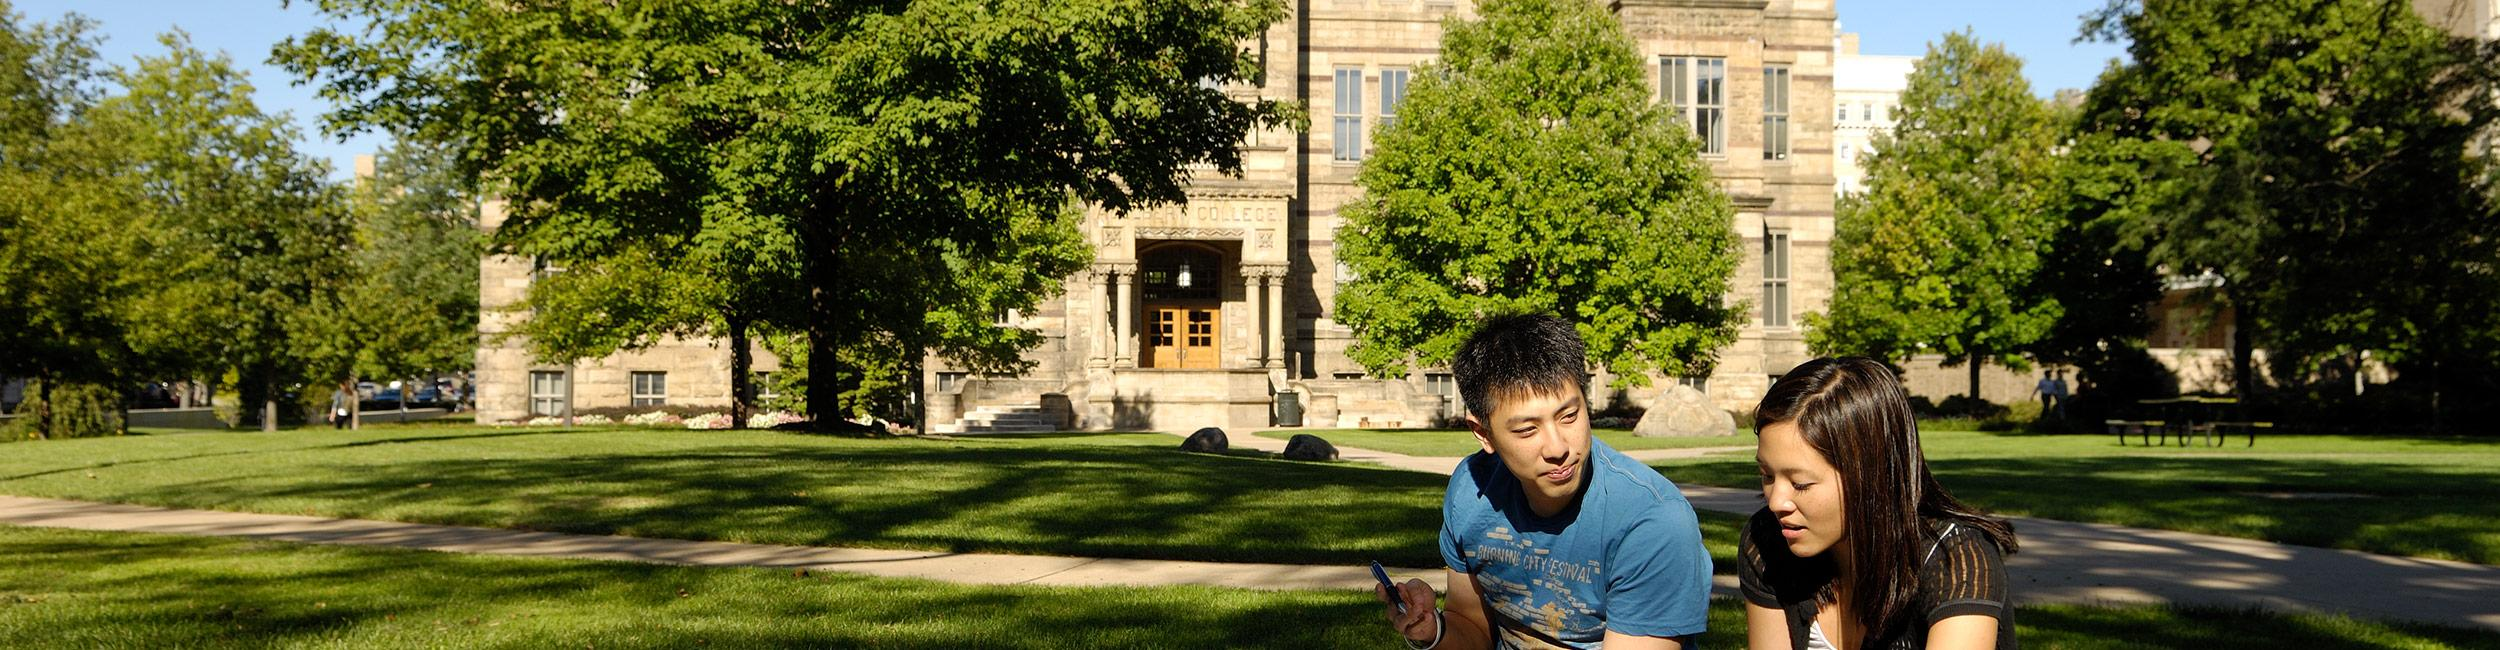 Students sitting on the grass in the quad